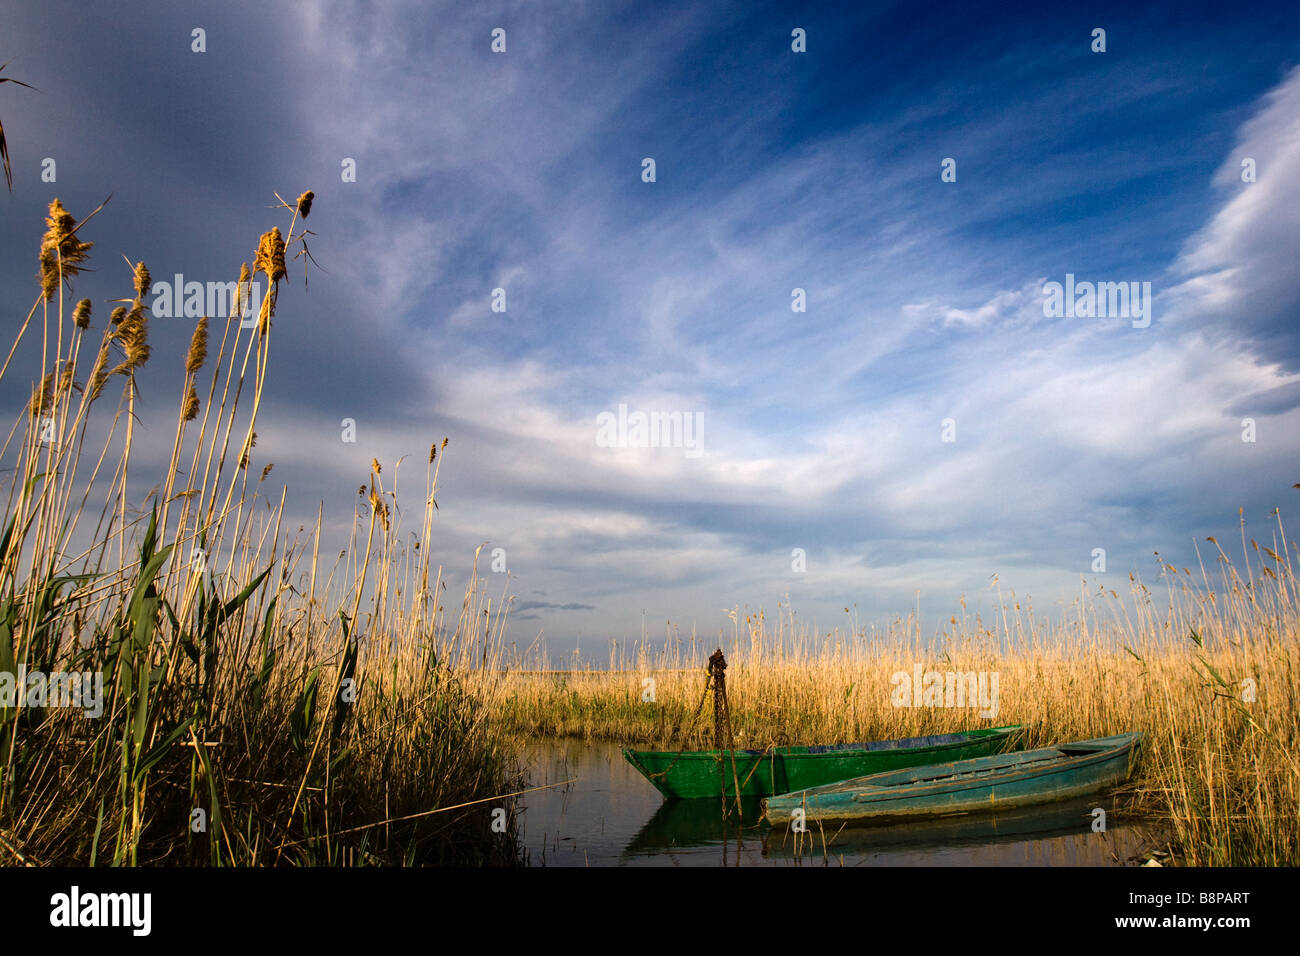 Two tied up boats on a warm afternoon, Delta de l'Ebre natural reserve, Spain Stock Photo